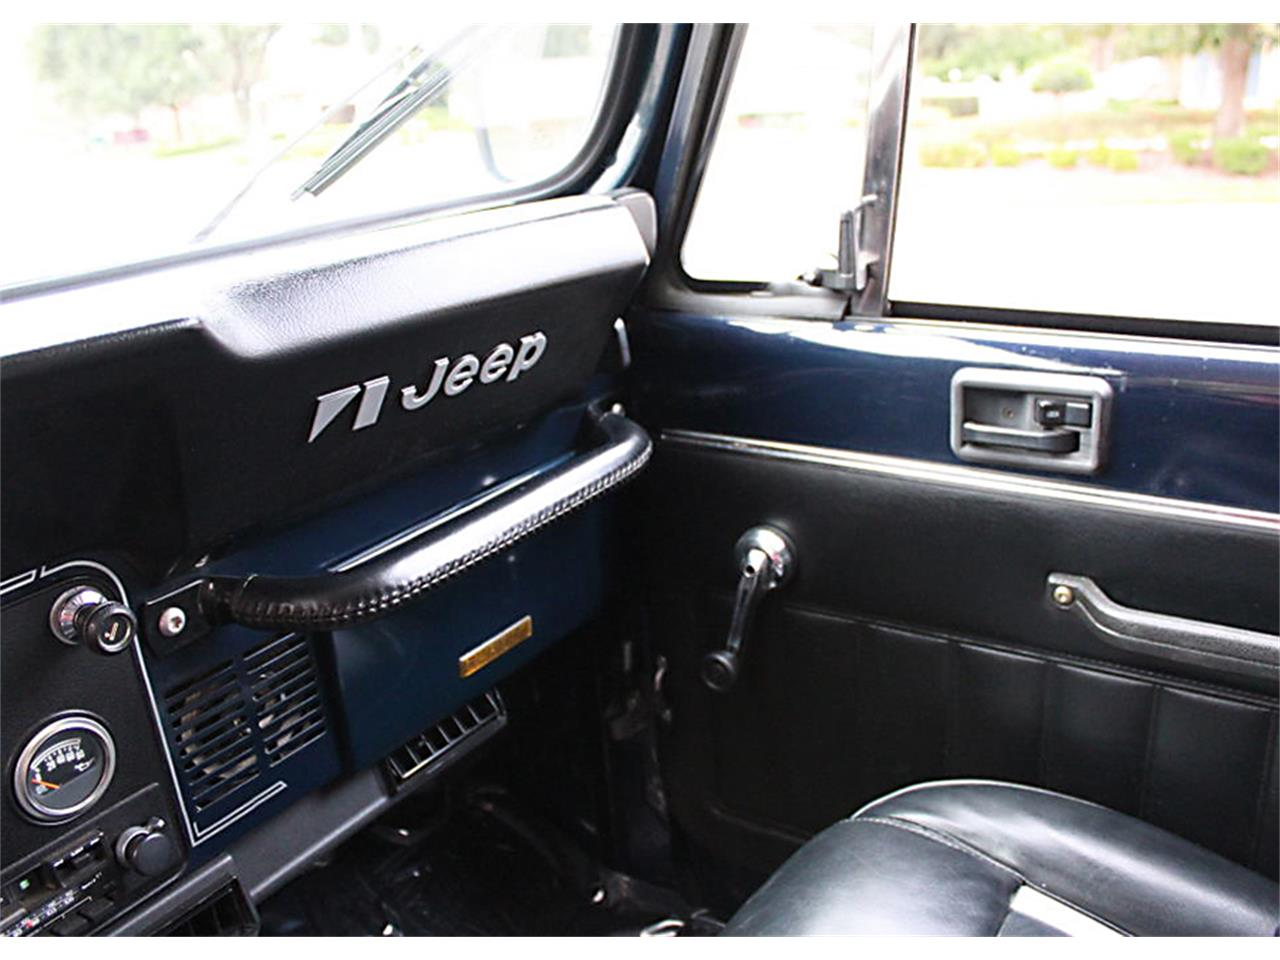 Large Picture of 1981 Jeep CJ7 located in Florida Offered by MJC Classic Cars - PH46